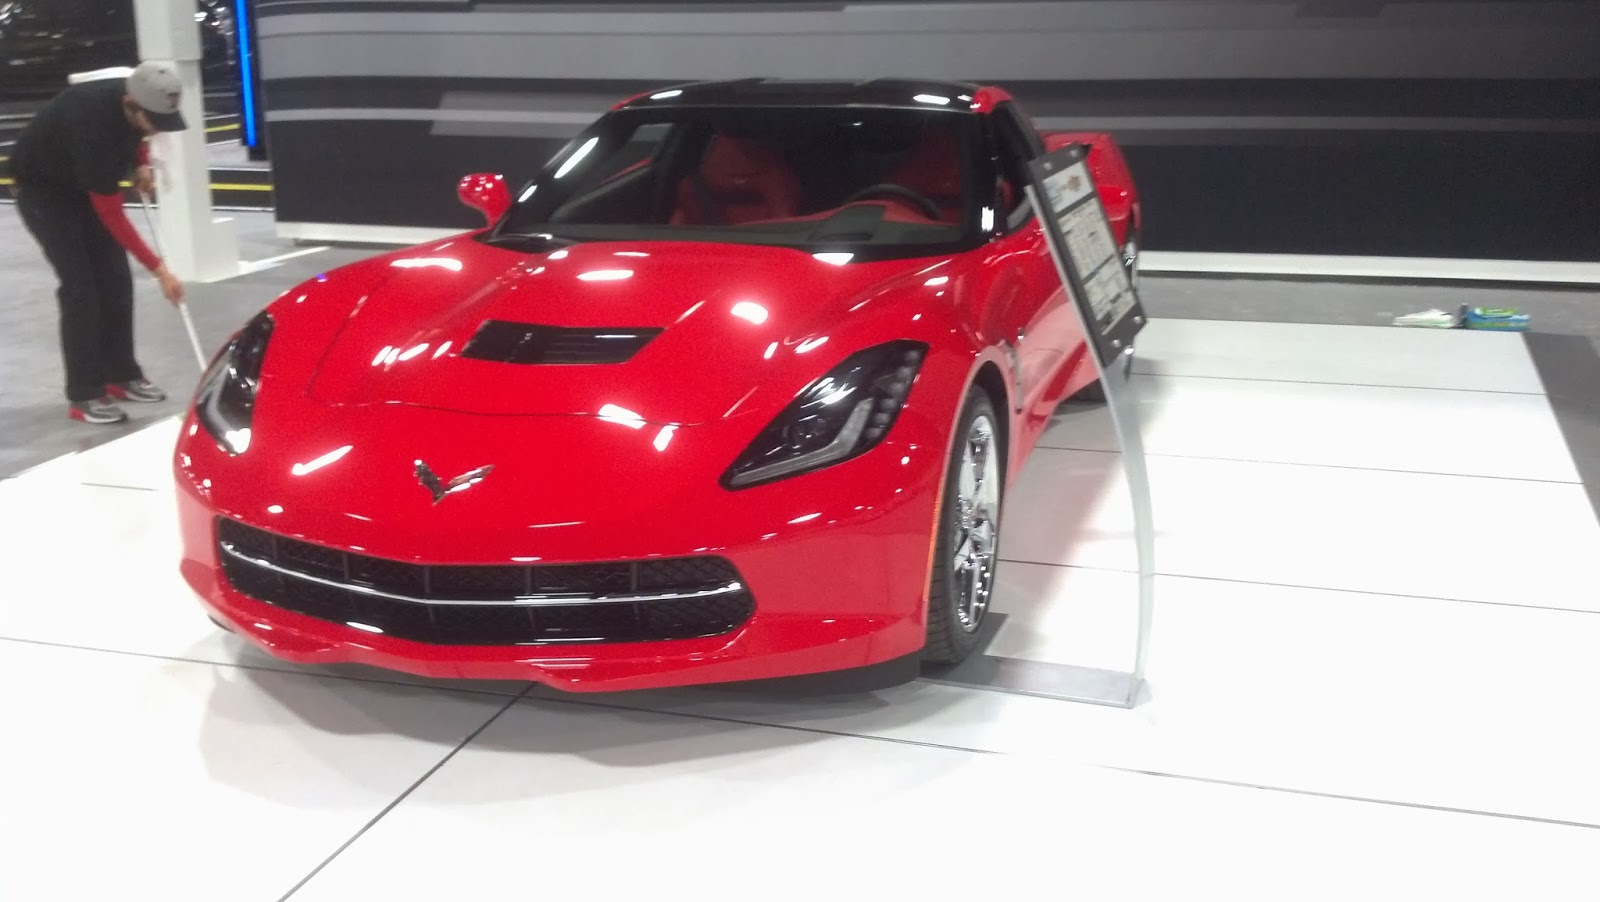 http://www.chevrolet.com/corvette-stingray.html